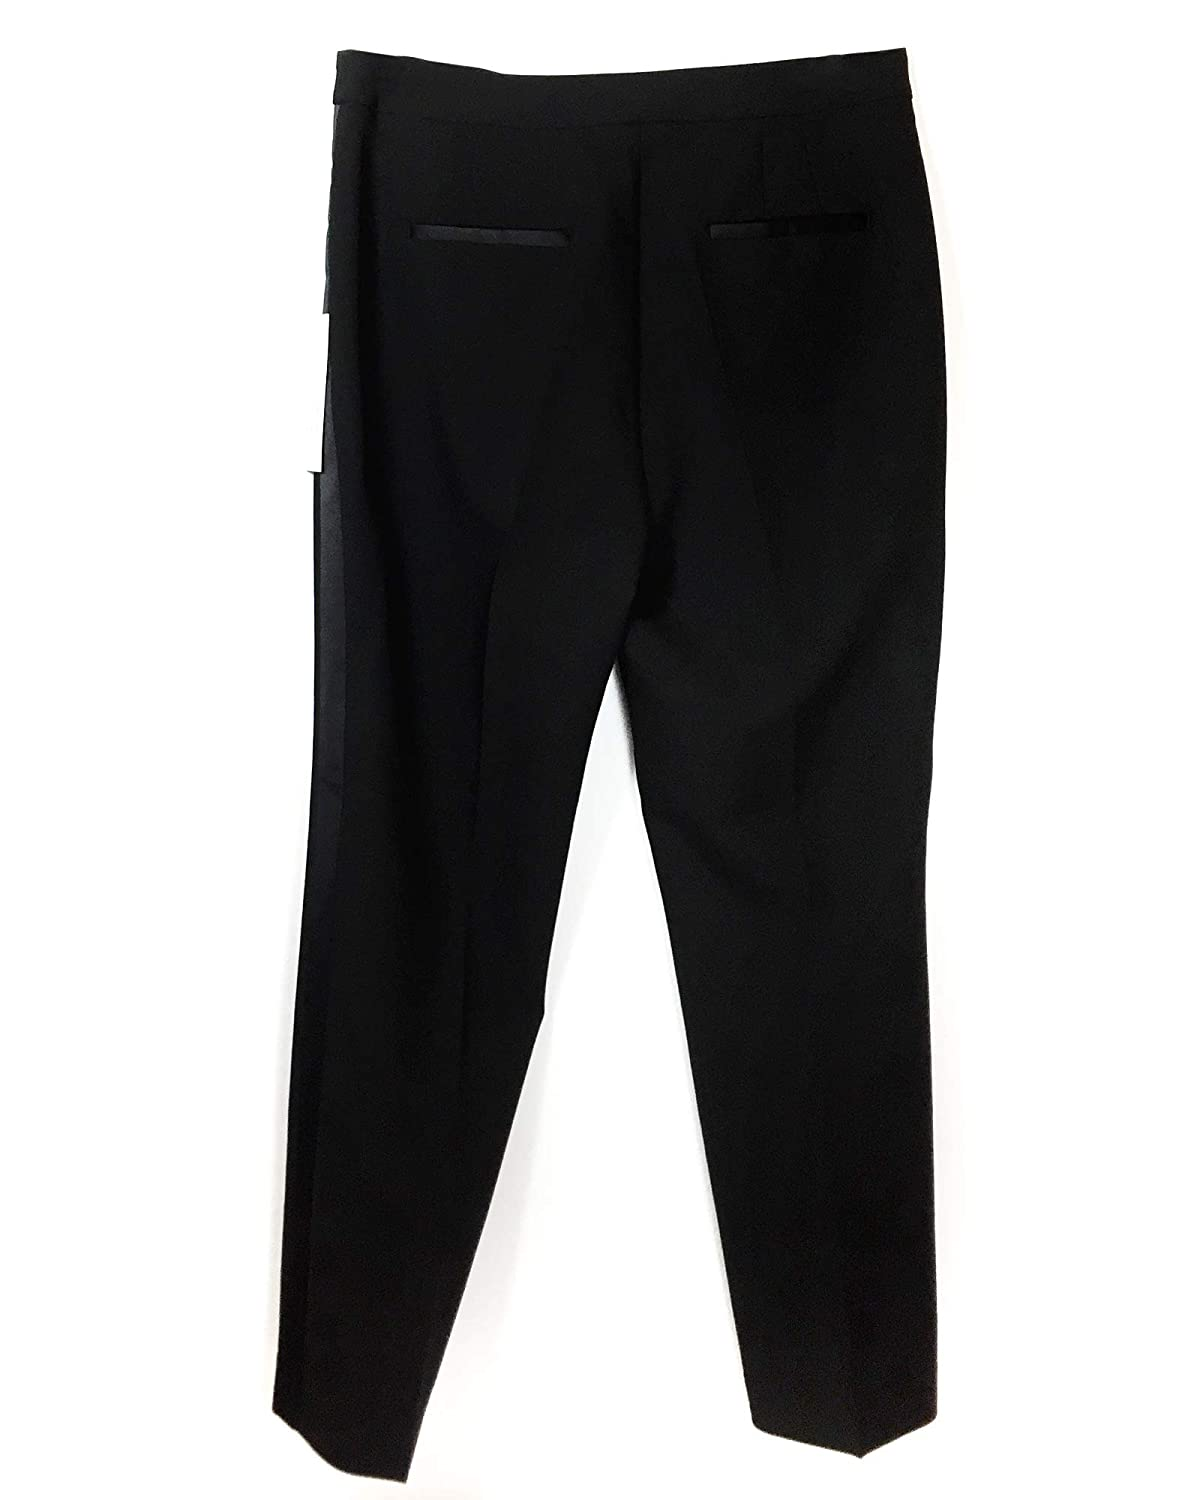 1572275f Zara Women's Tuxedo Trousers with Side Trim Detail 2121/783: Amazon.co.uk:  Clothing